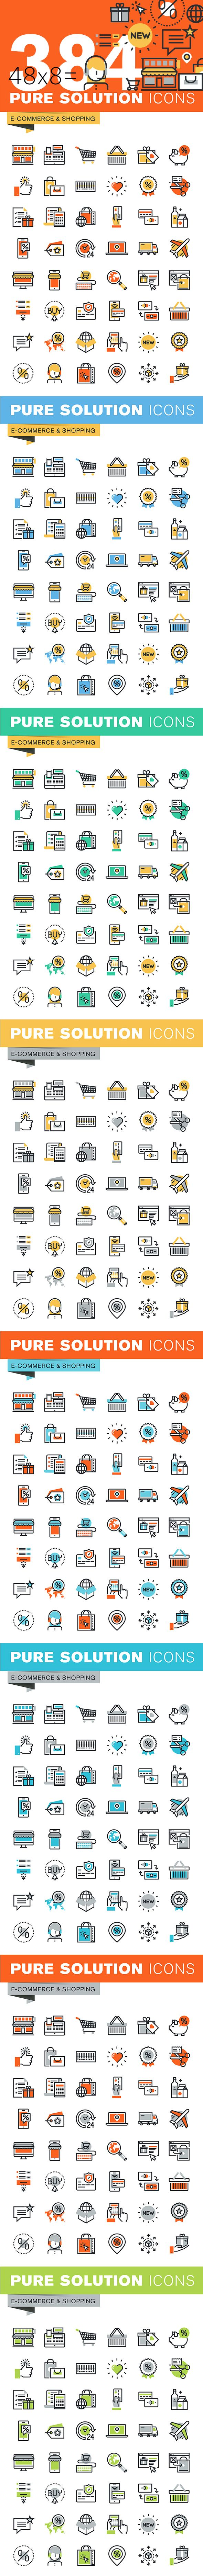 Set of Thin Line Icons of E-Commerce and Shopping on Behance